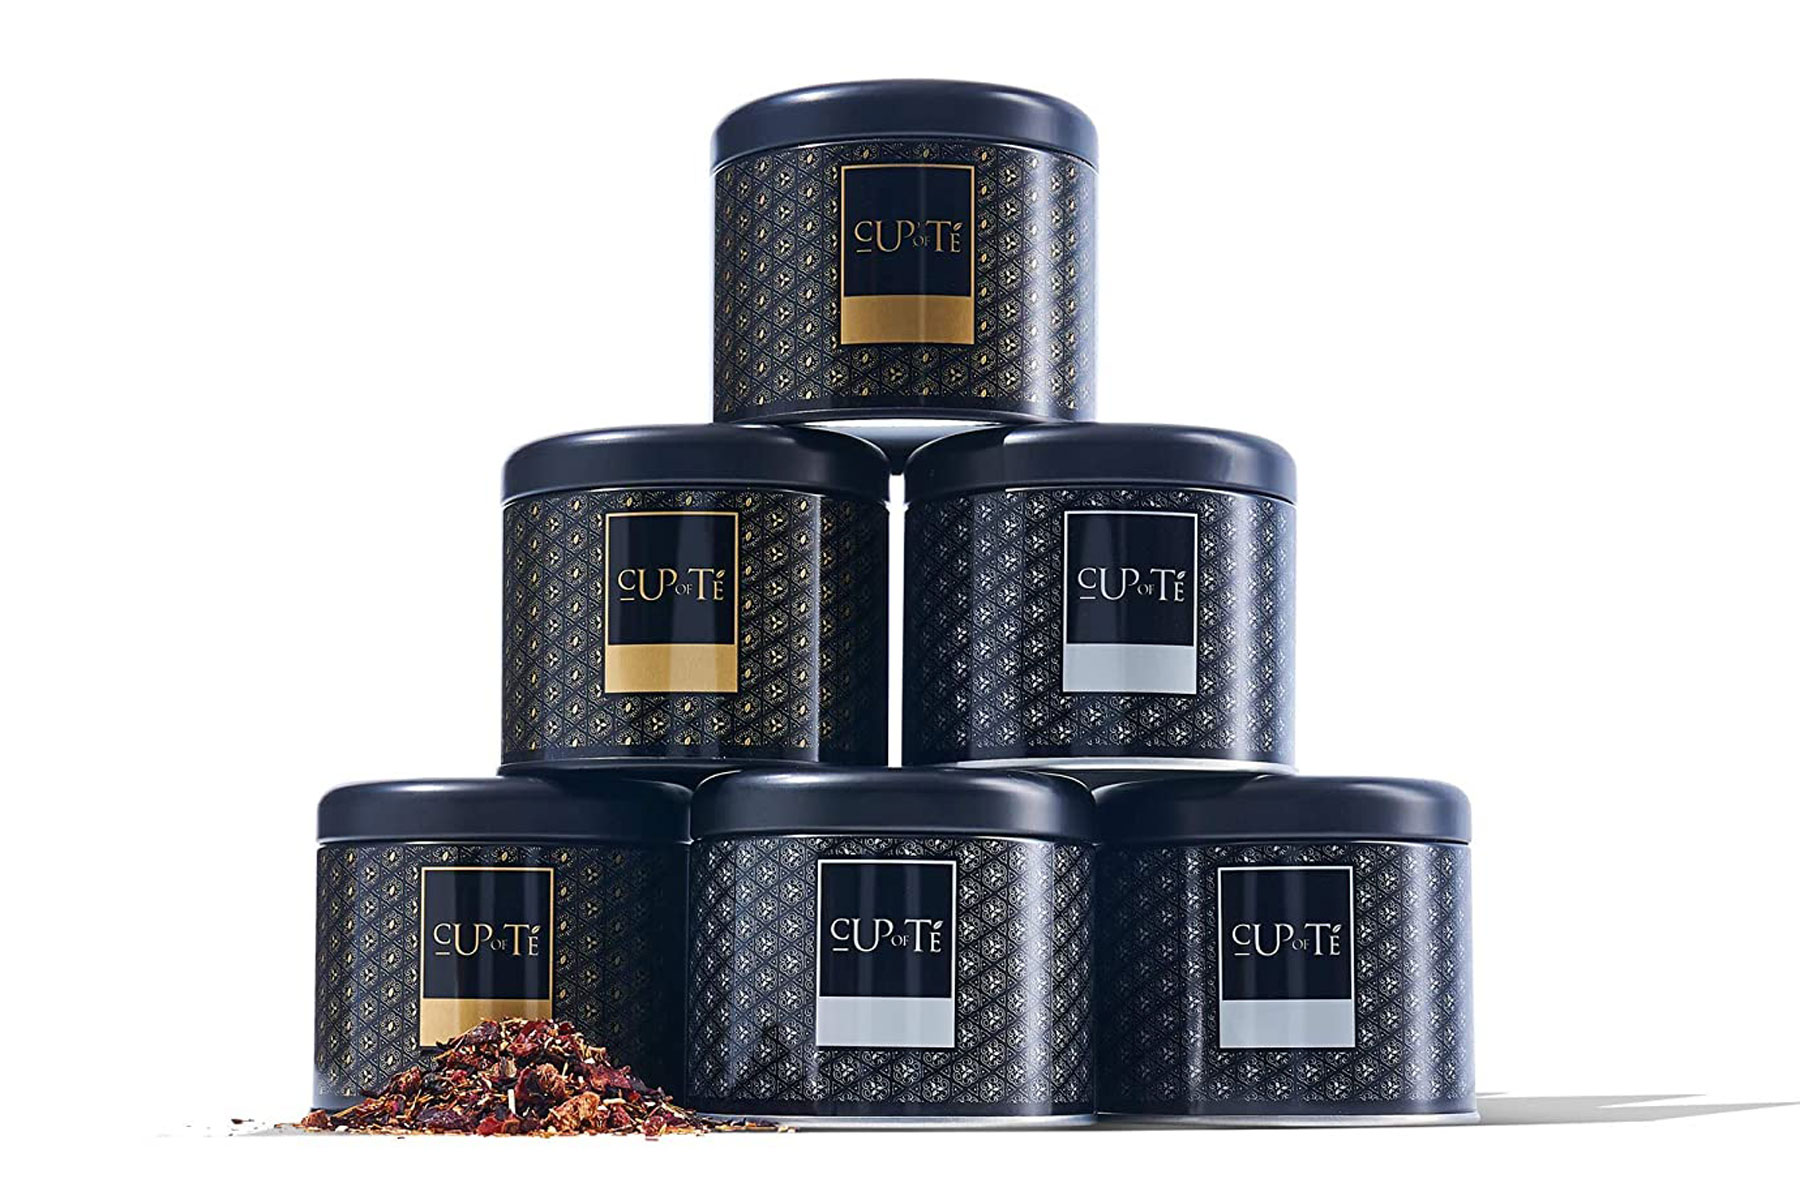 Cans of tea in a gift set